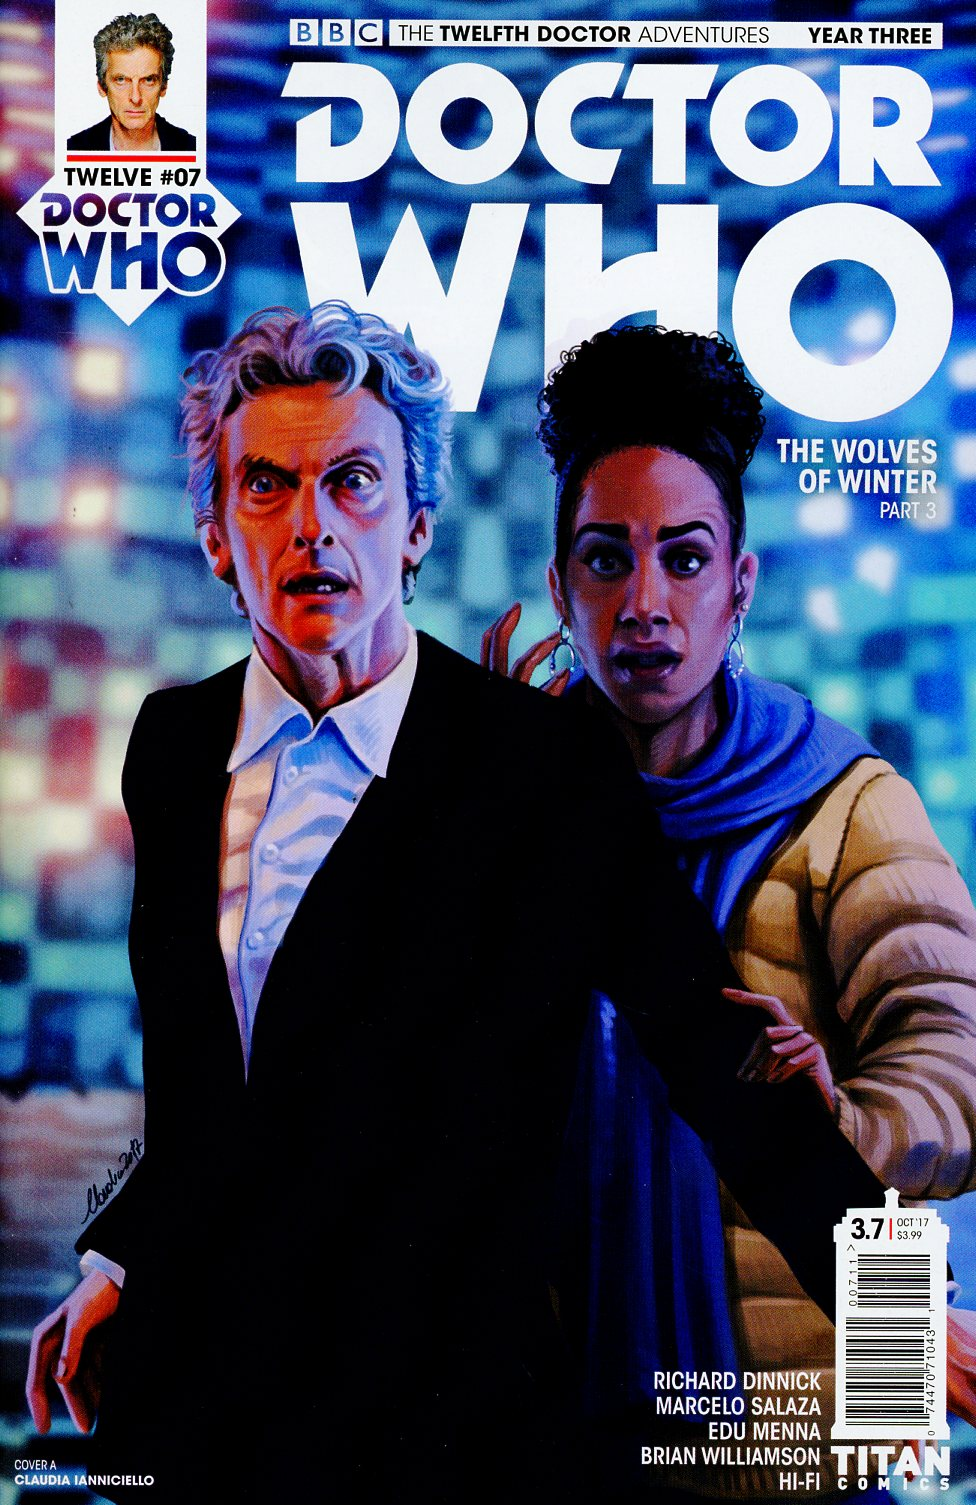 Doctor Who 12th Doctor Year Three #7 Cover A Regular Claudia Ianniciello Cover